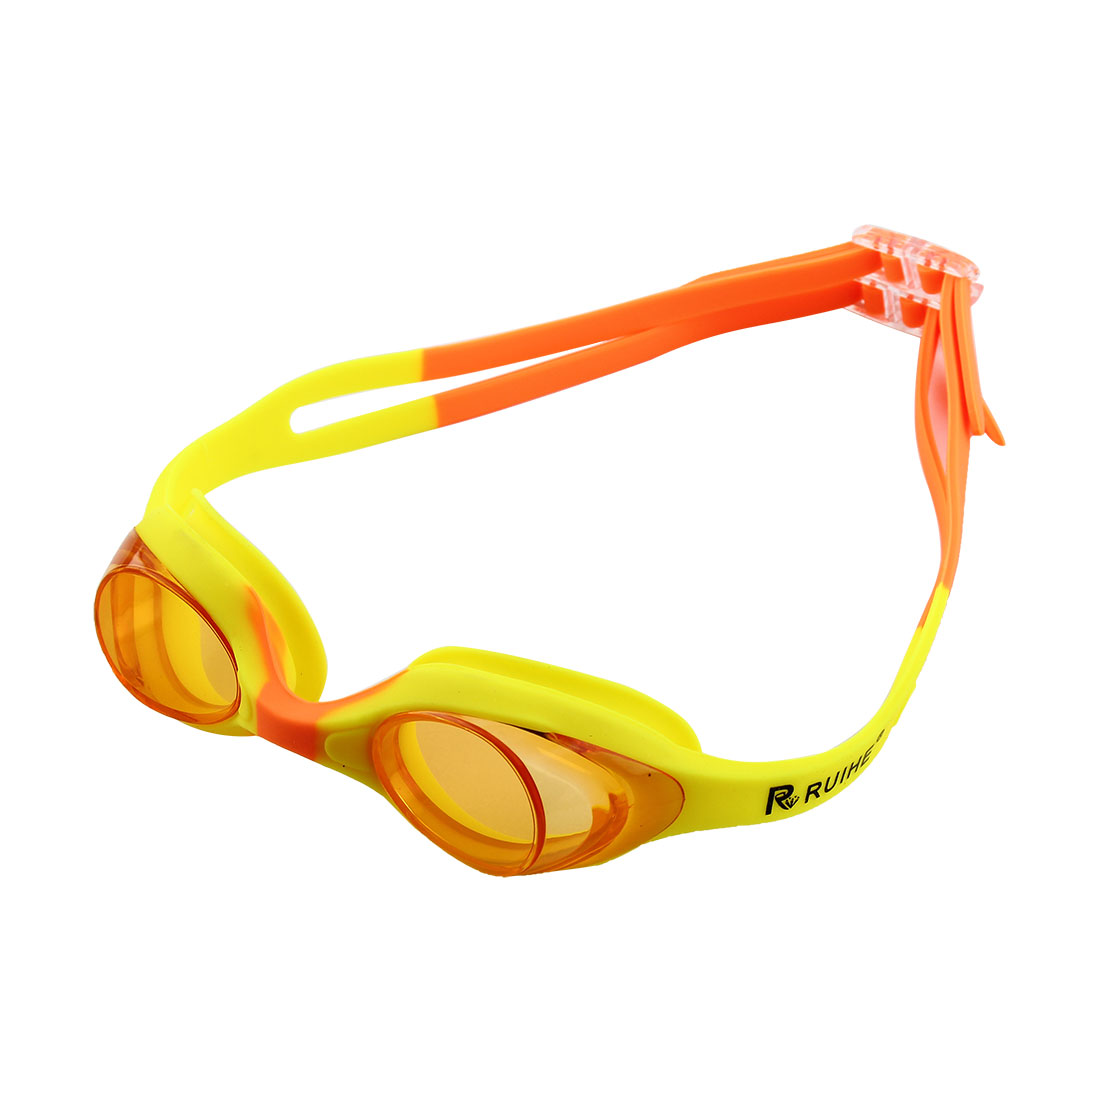 Clear Vision Anti Fog Swimming Goggles Glasses Yellow Orange for Youth